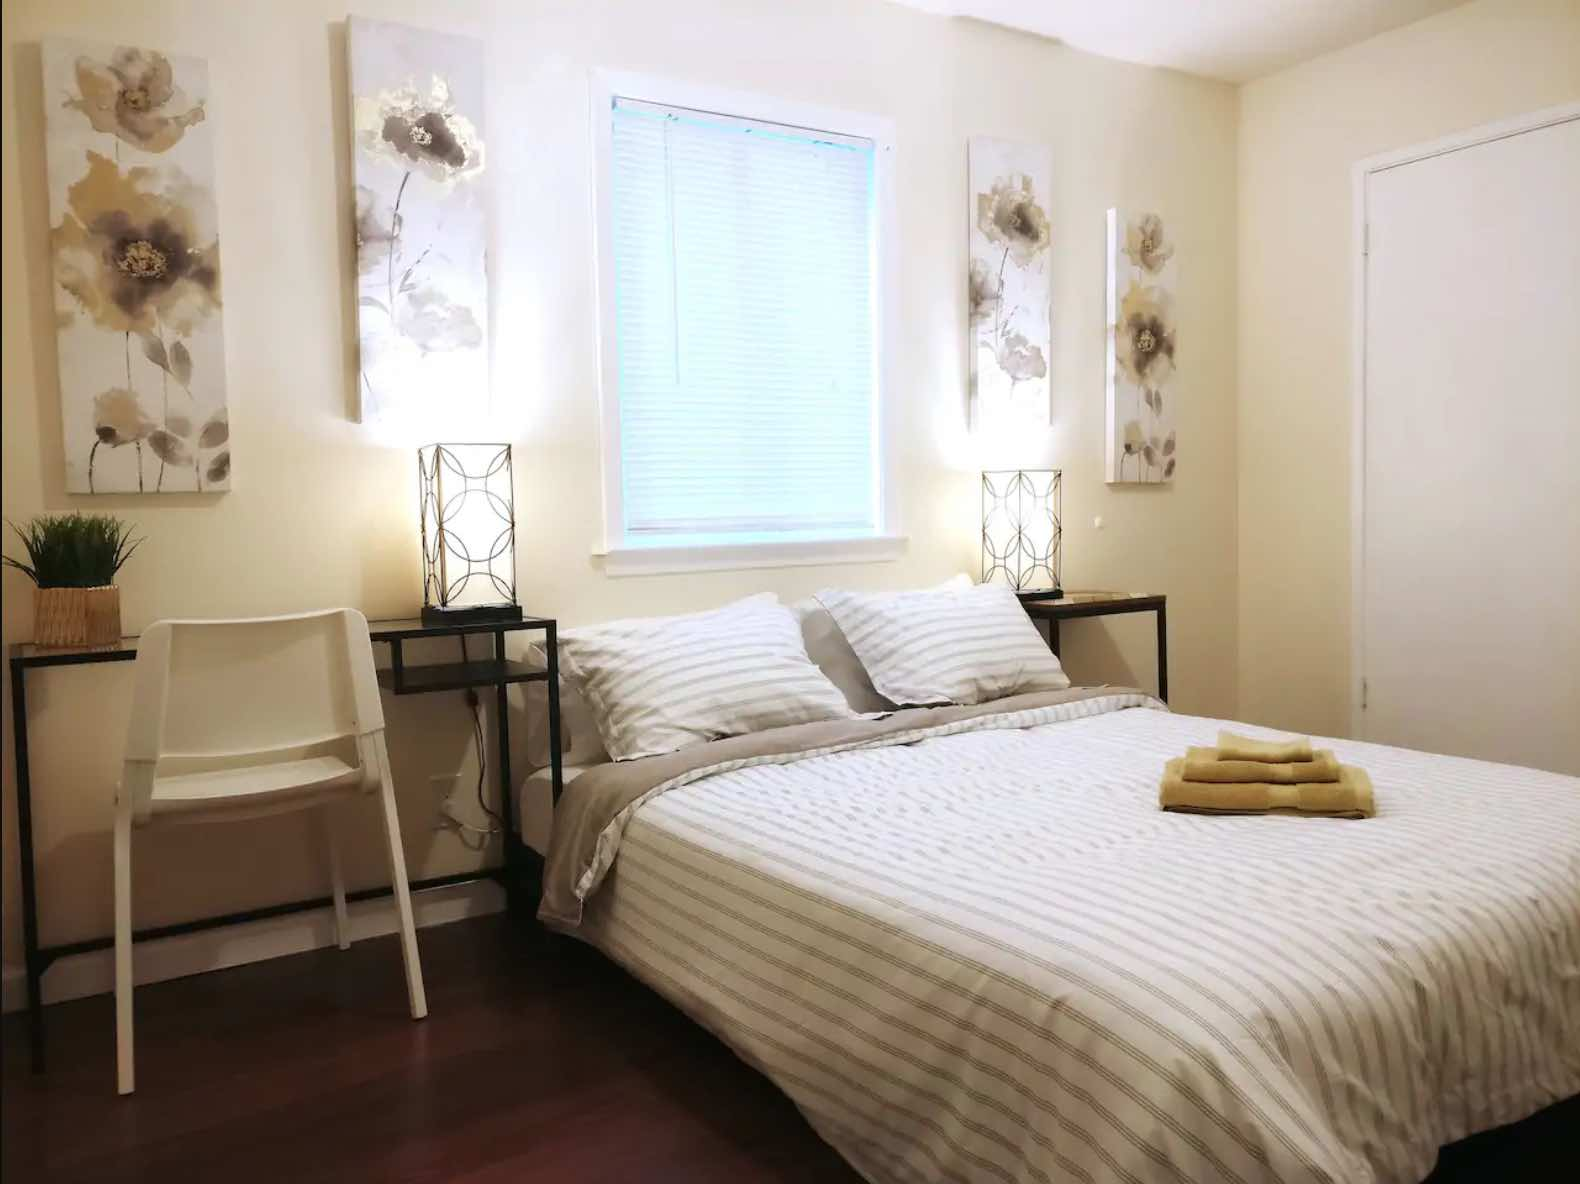 How to Appraise Room-by-Room investment properties.